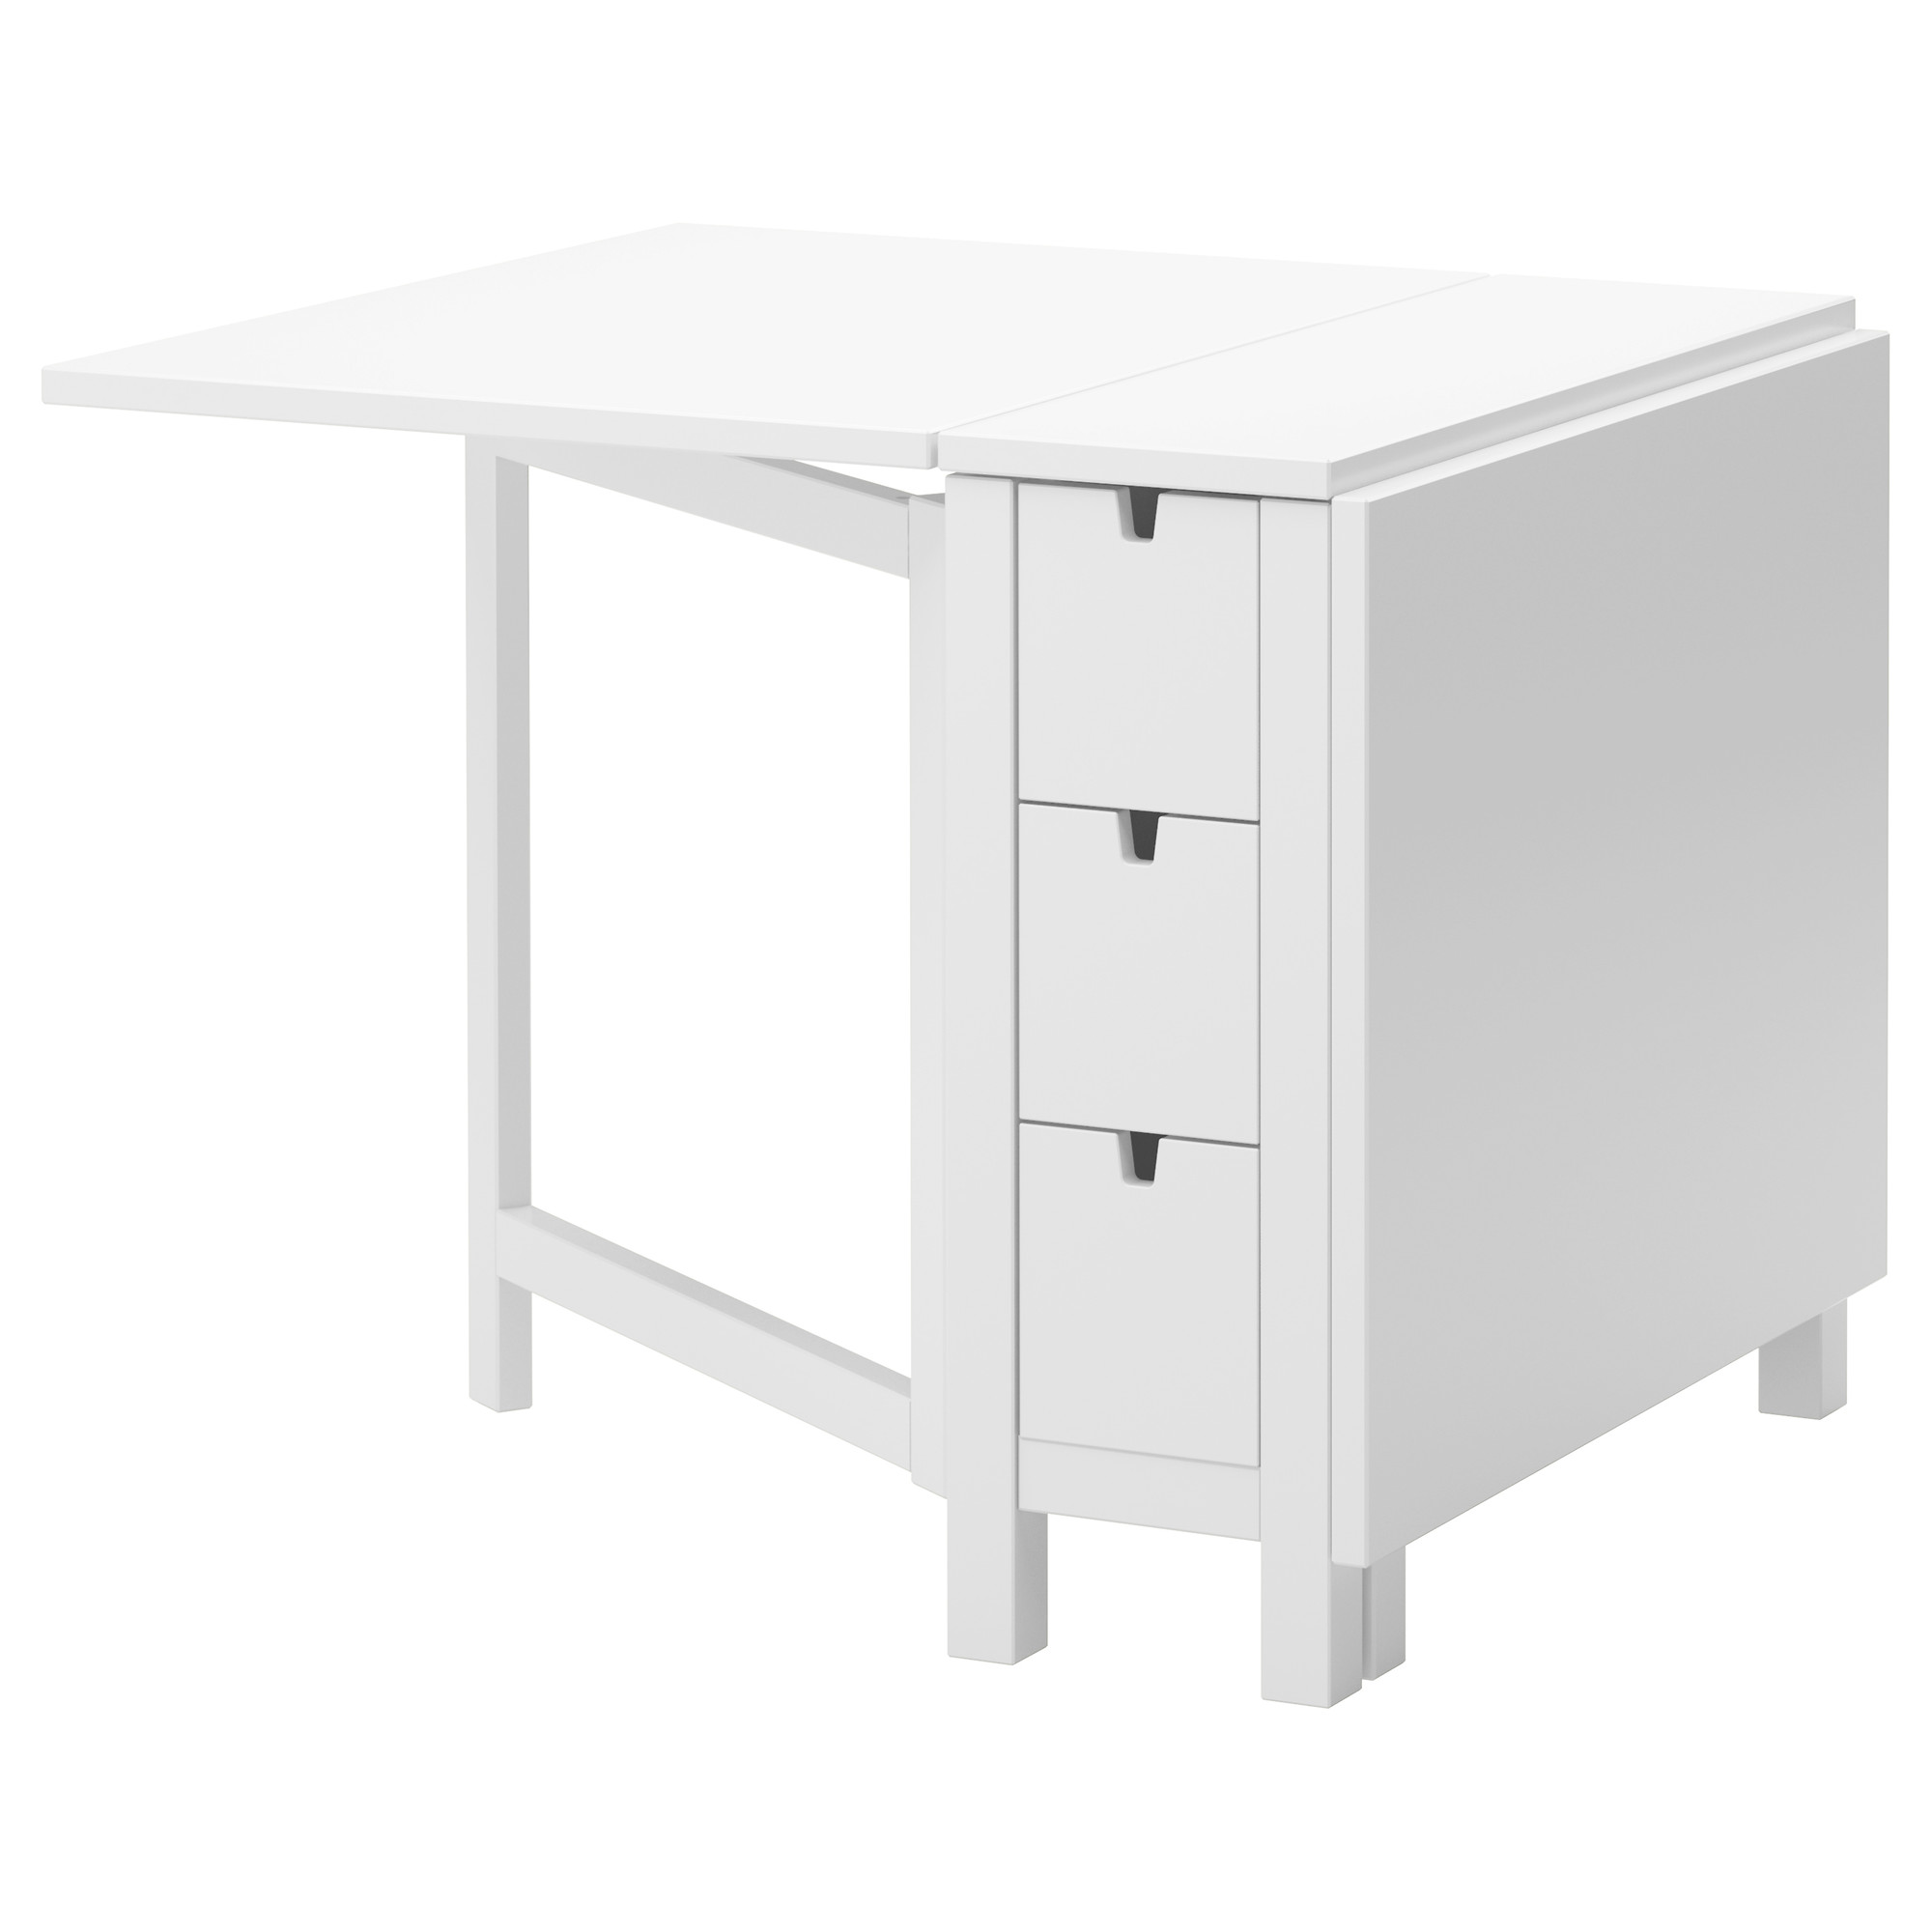 - NORDEN - Gateleg Table, White IKEA Hong Kong